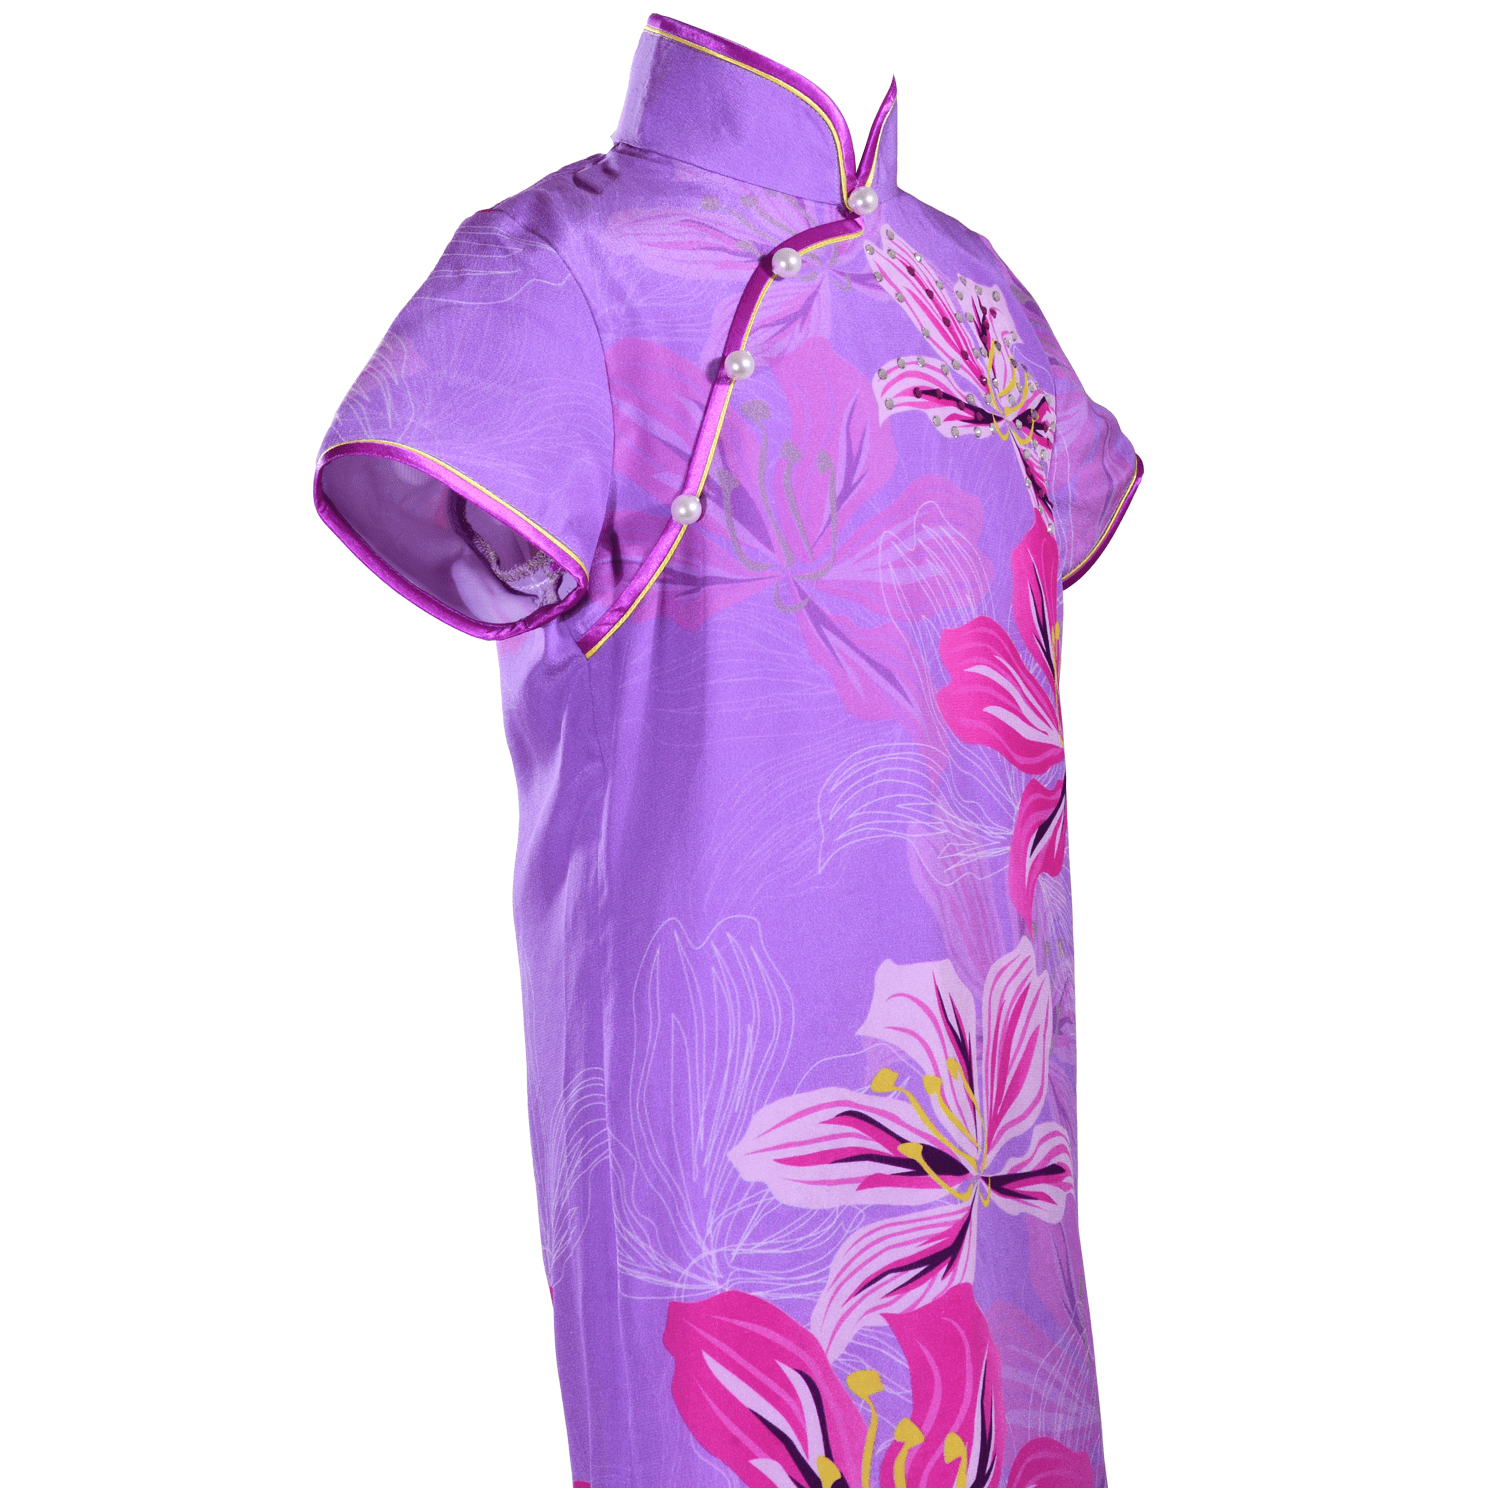 【BAUHINIA】KID 100% Silk Qipao with Crystals